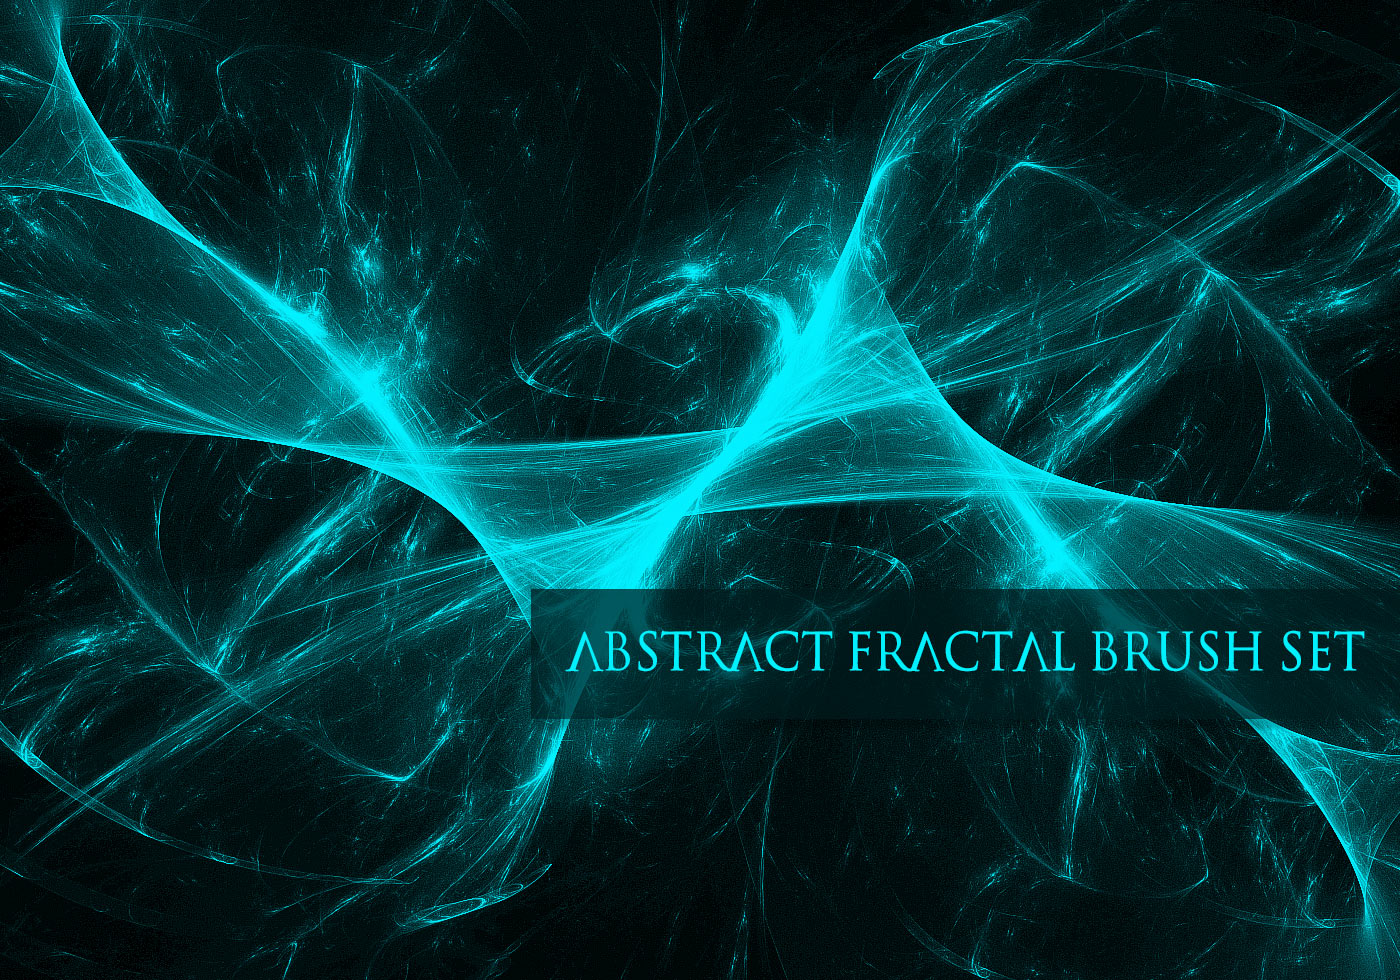 Abstract Fractal Brushset 16 - Free Photoshop Brushes at ...